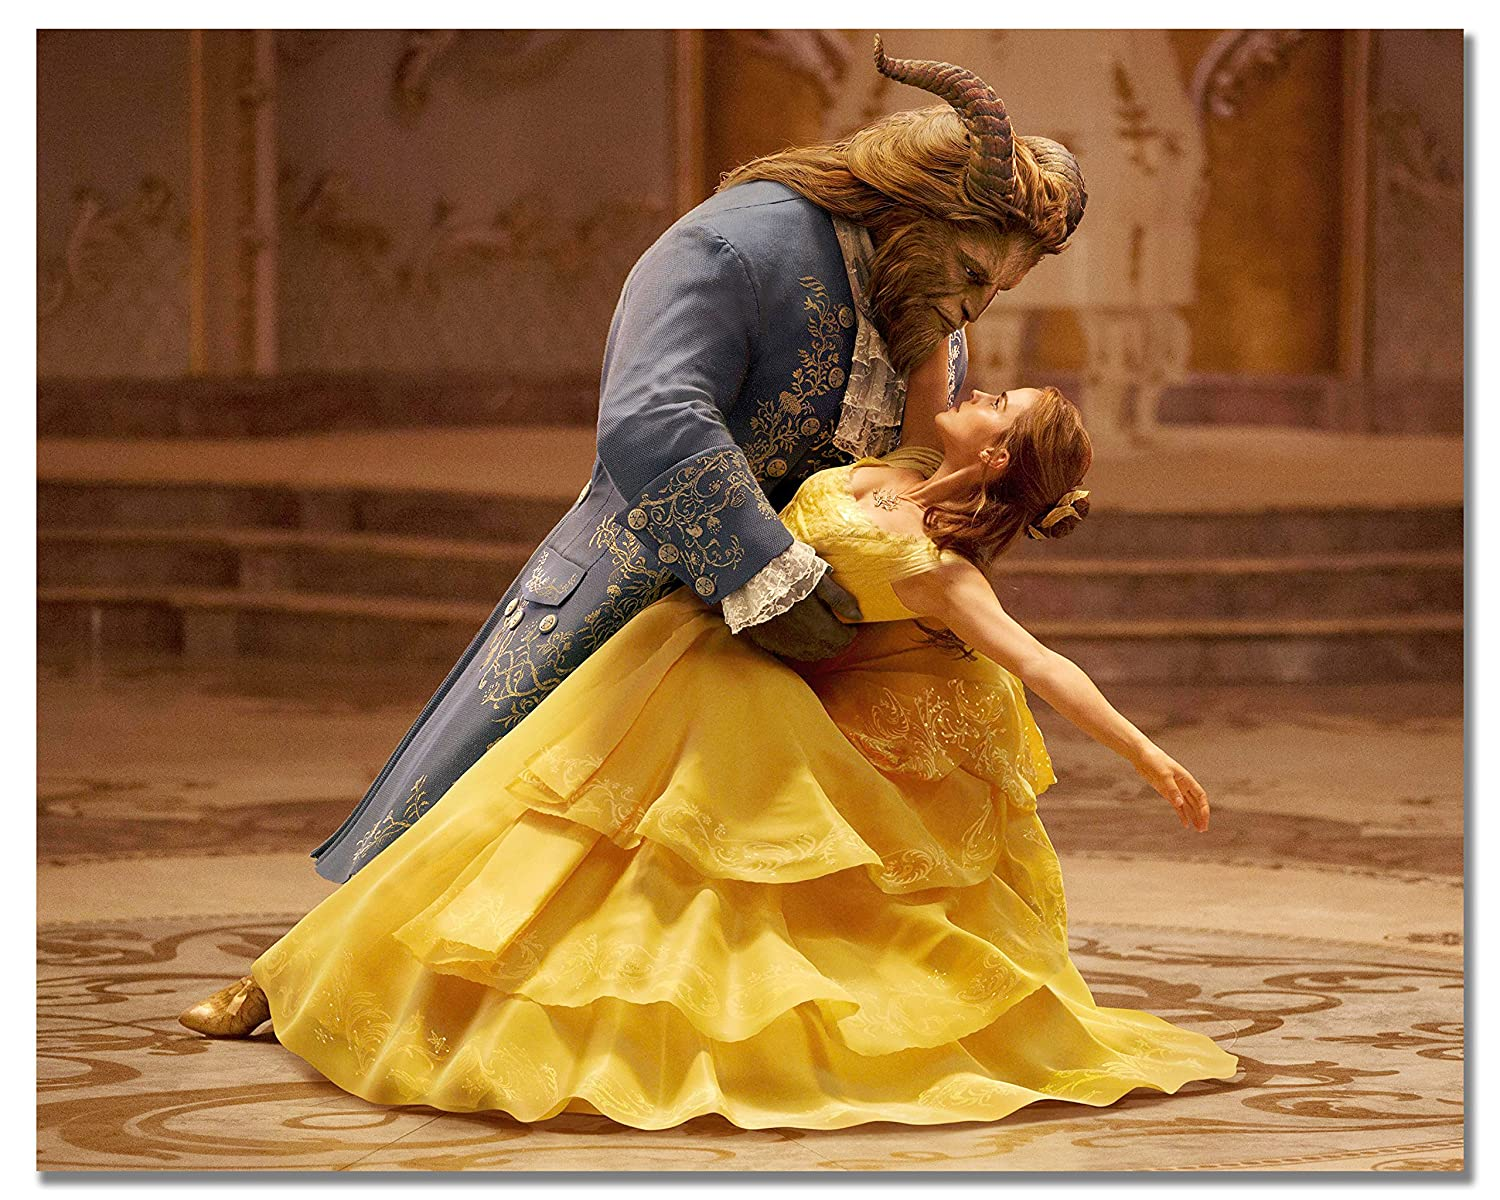 Beauty and the Beast Movie Prints dance waltz in yellow dress Emma Watson and Dan Stevens